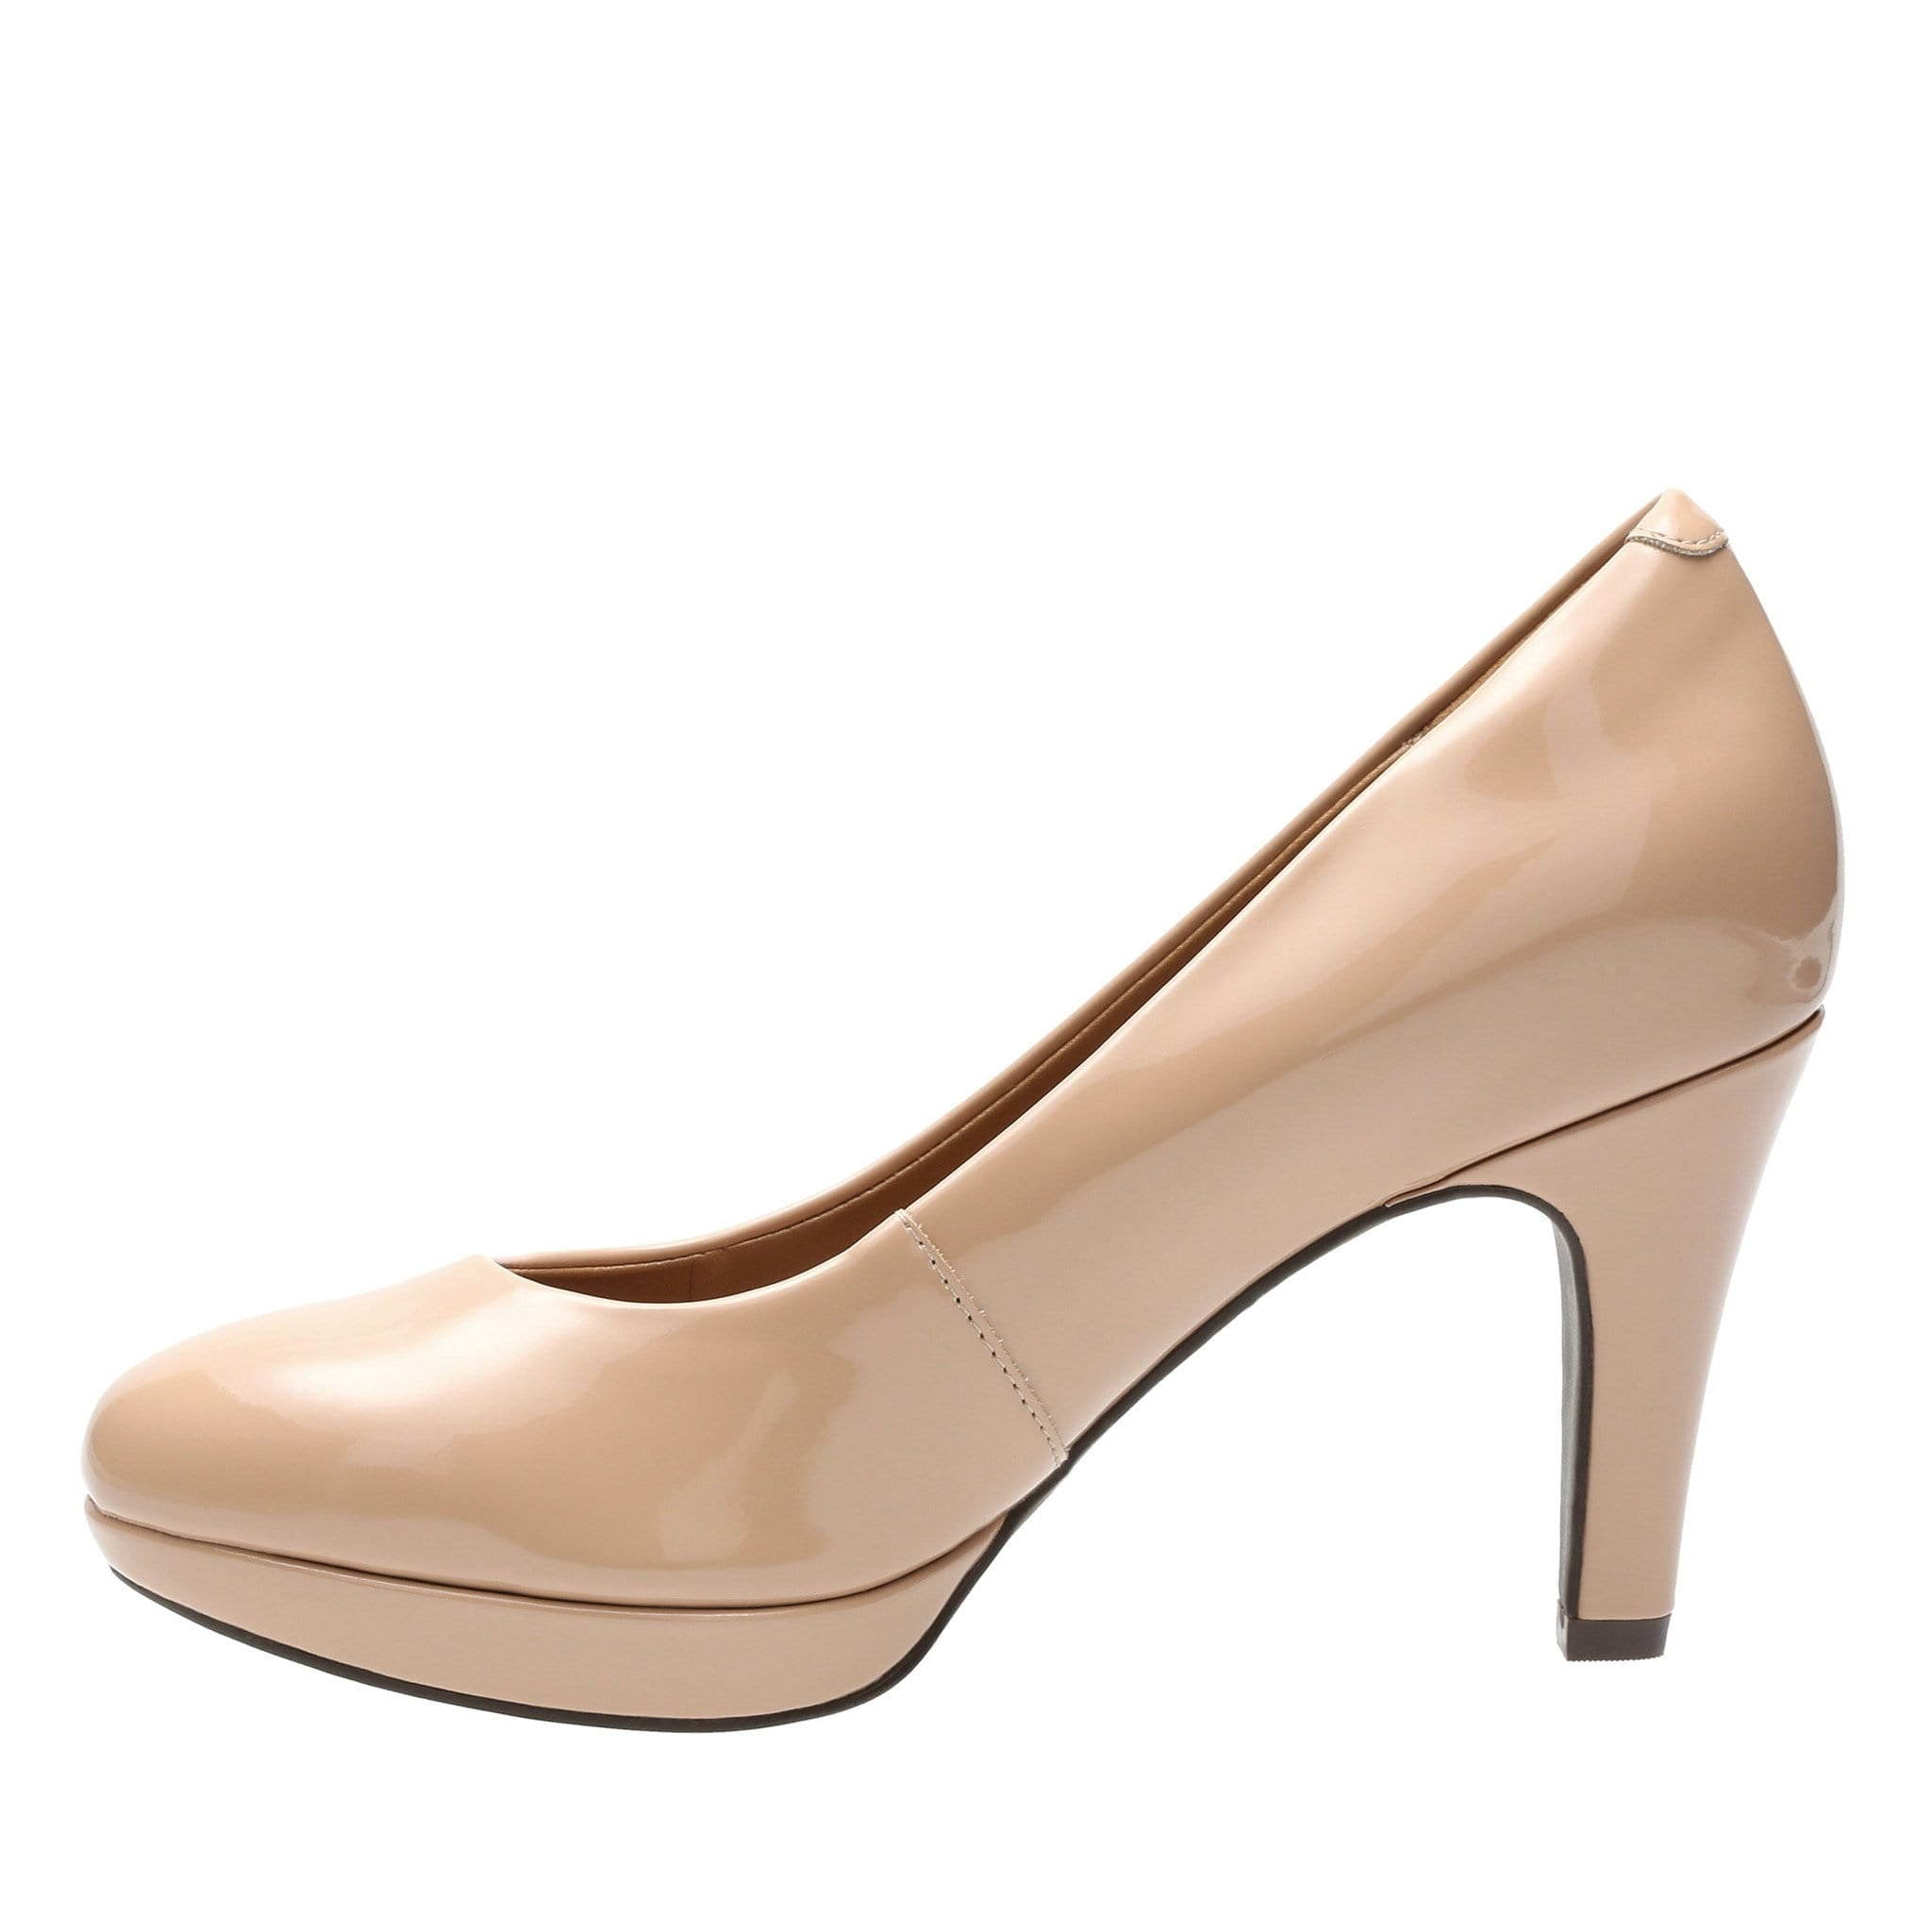 Clarks Brier Dolly Nude Patent Pump